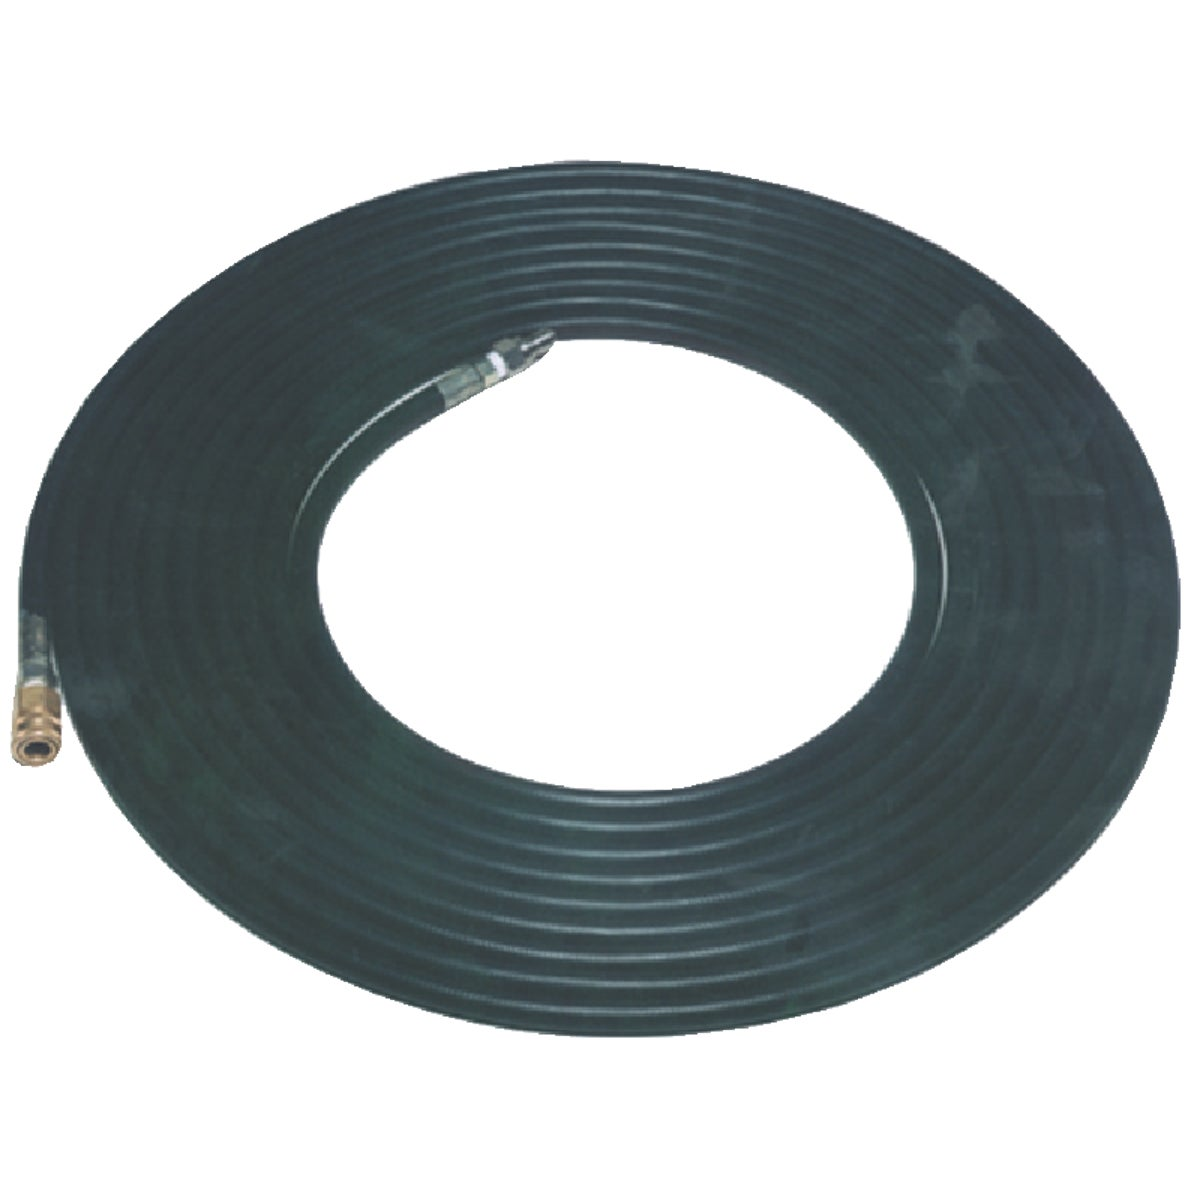 30' EXTENSION HOSE